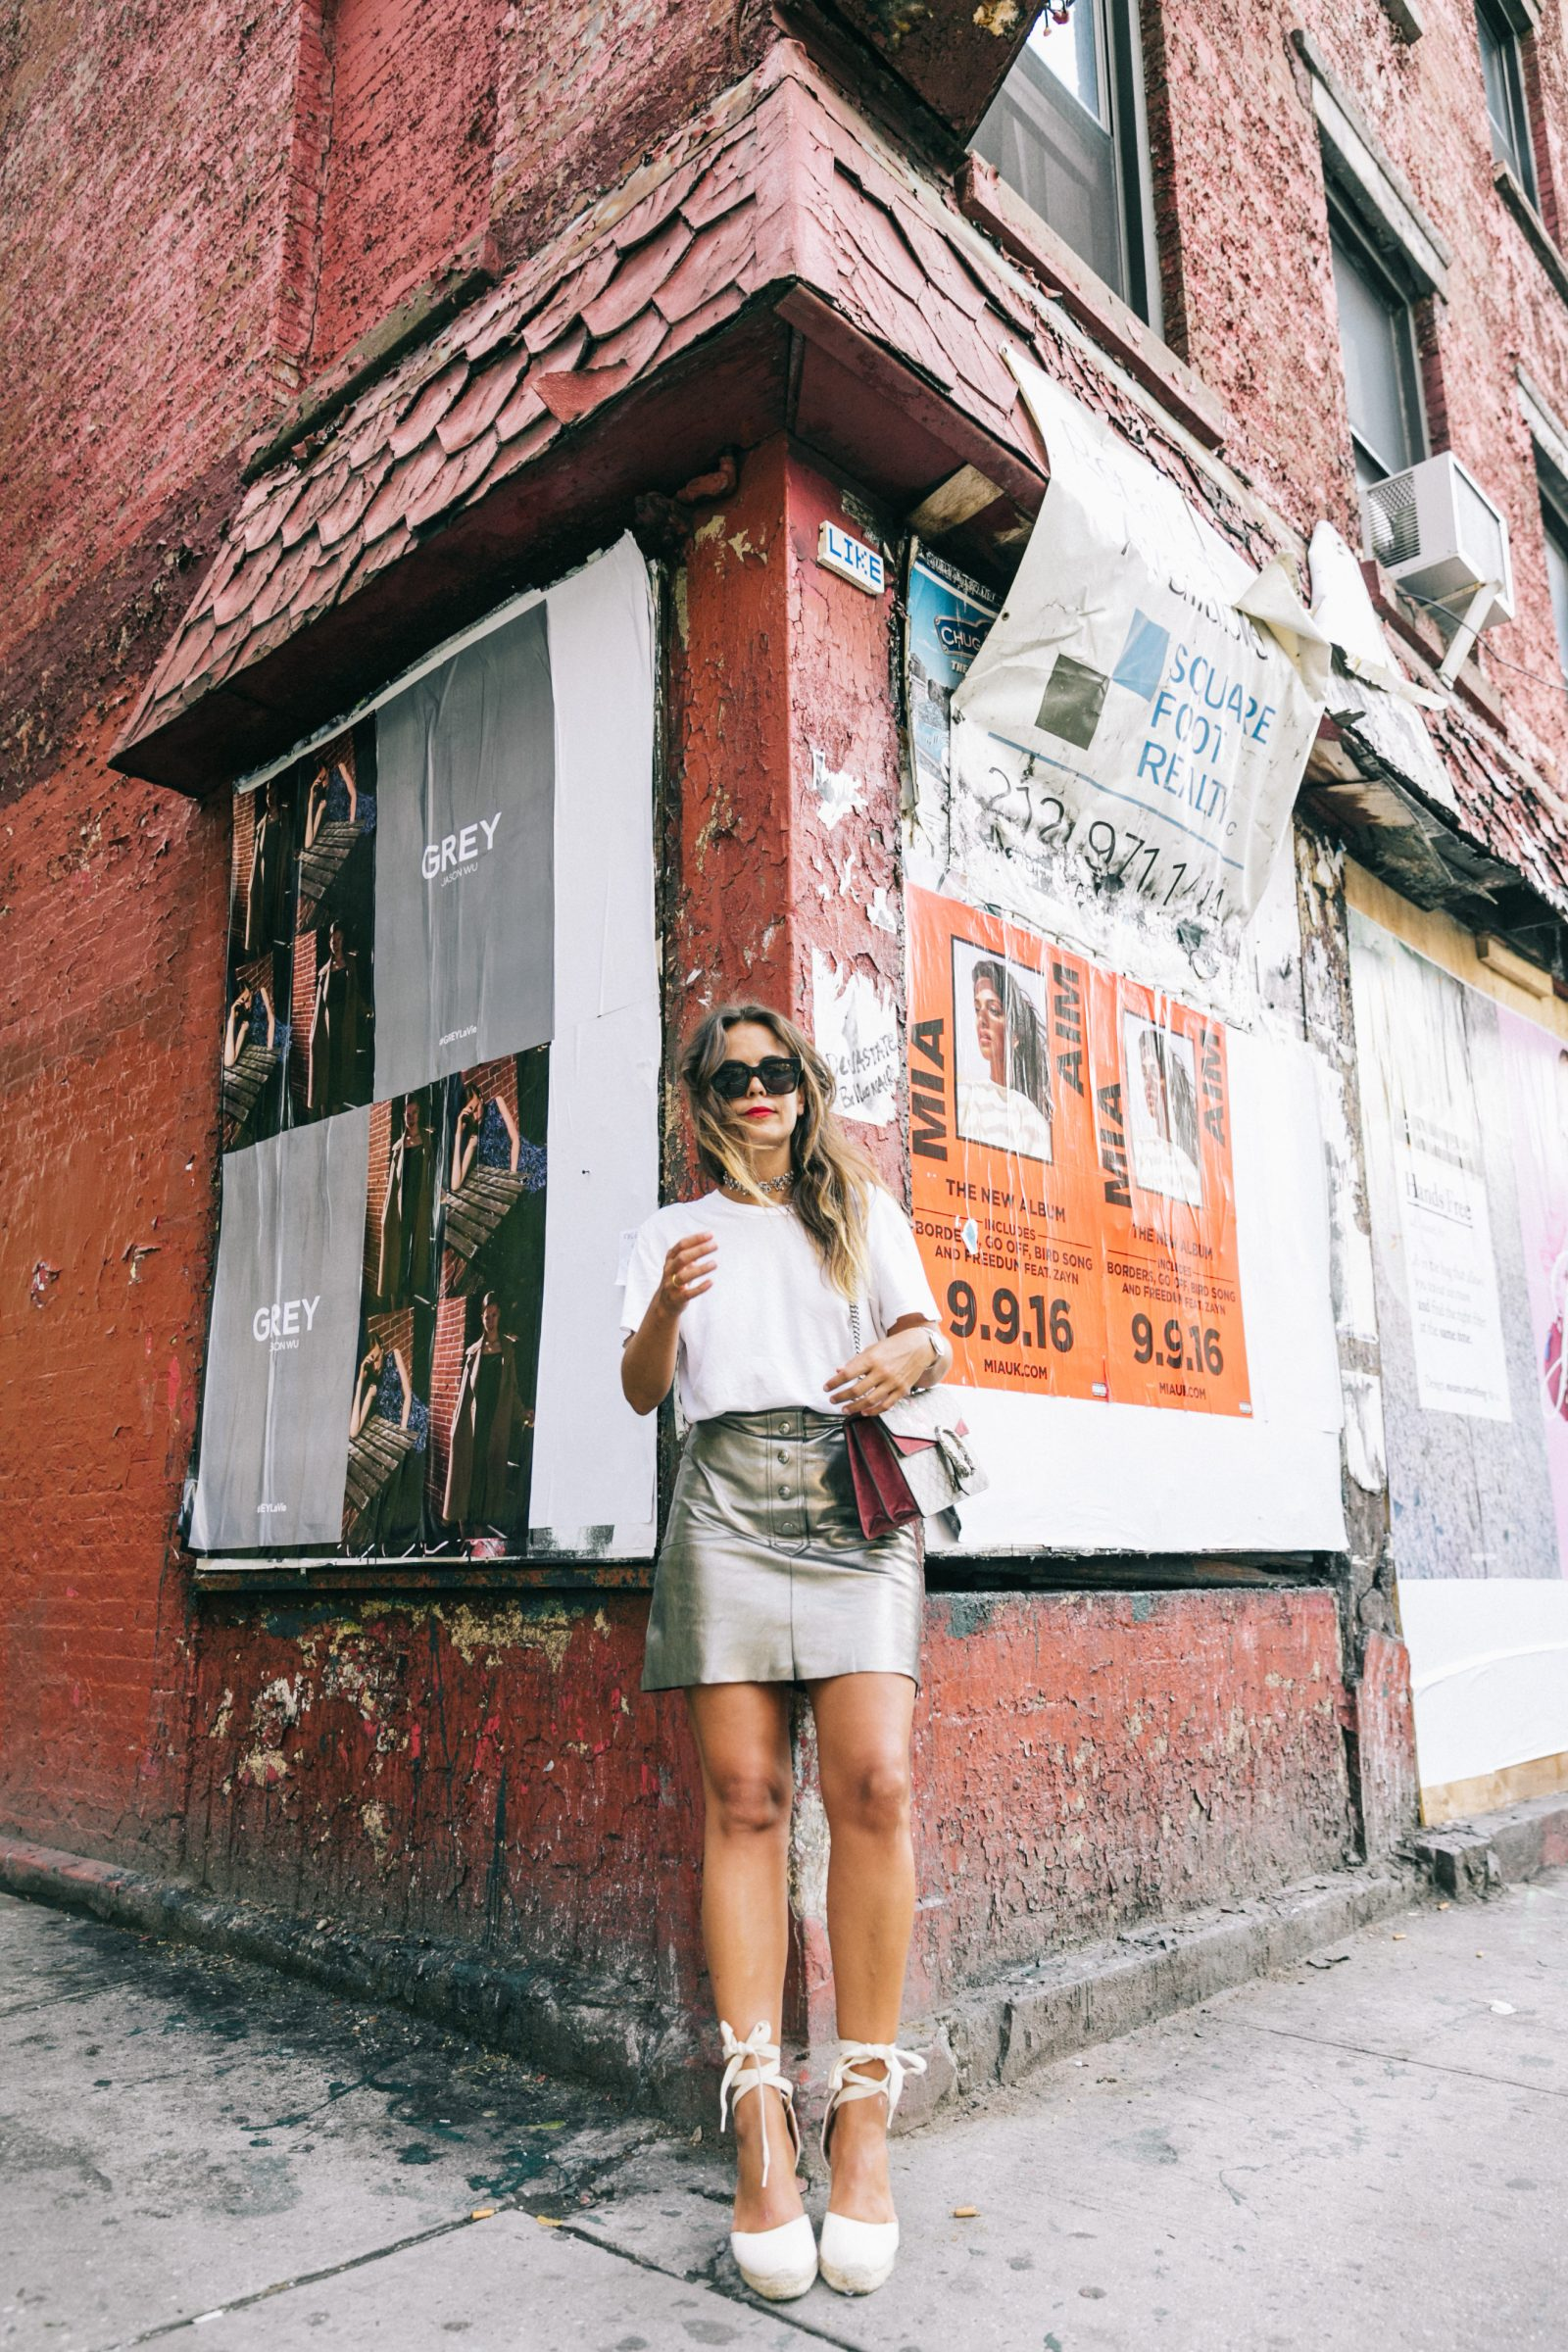 nyfw-new_york_fashion_week_ss17-street_style-outfit-collage_vintage-metallic_leather_skirt-gucci_bag-soludos_espadriles-42